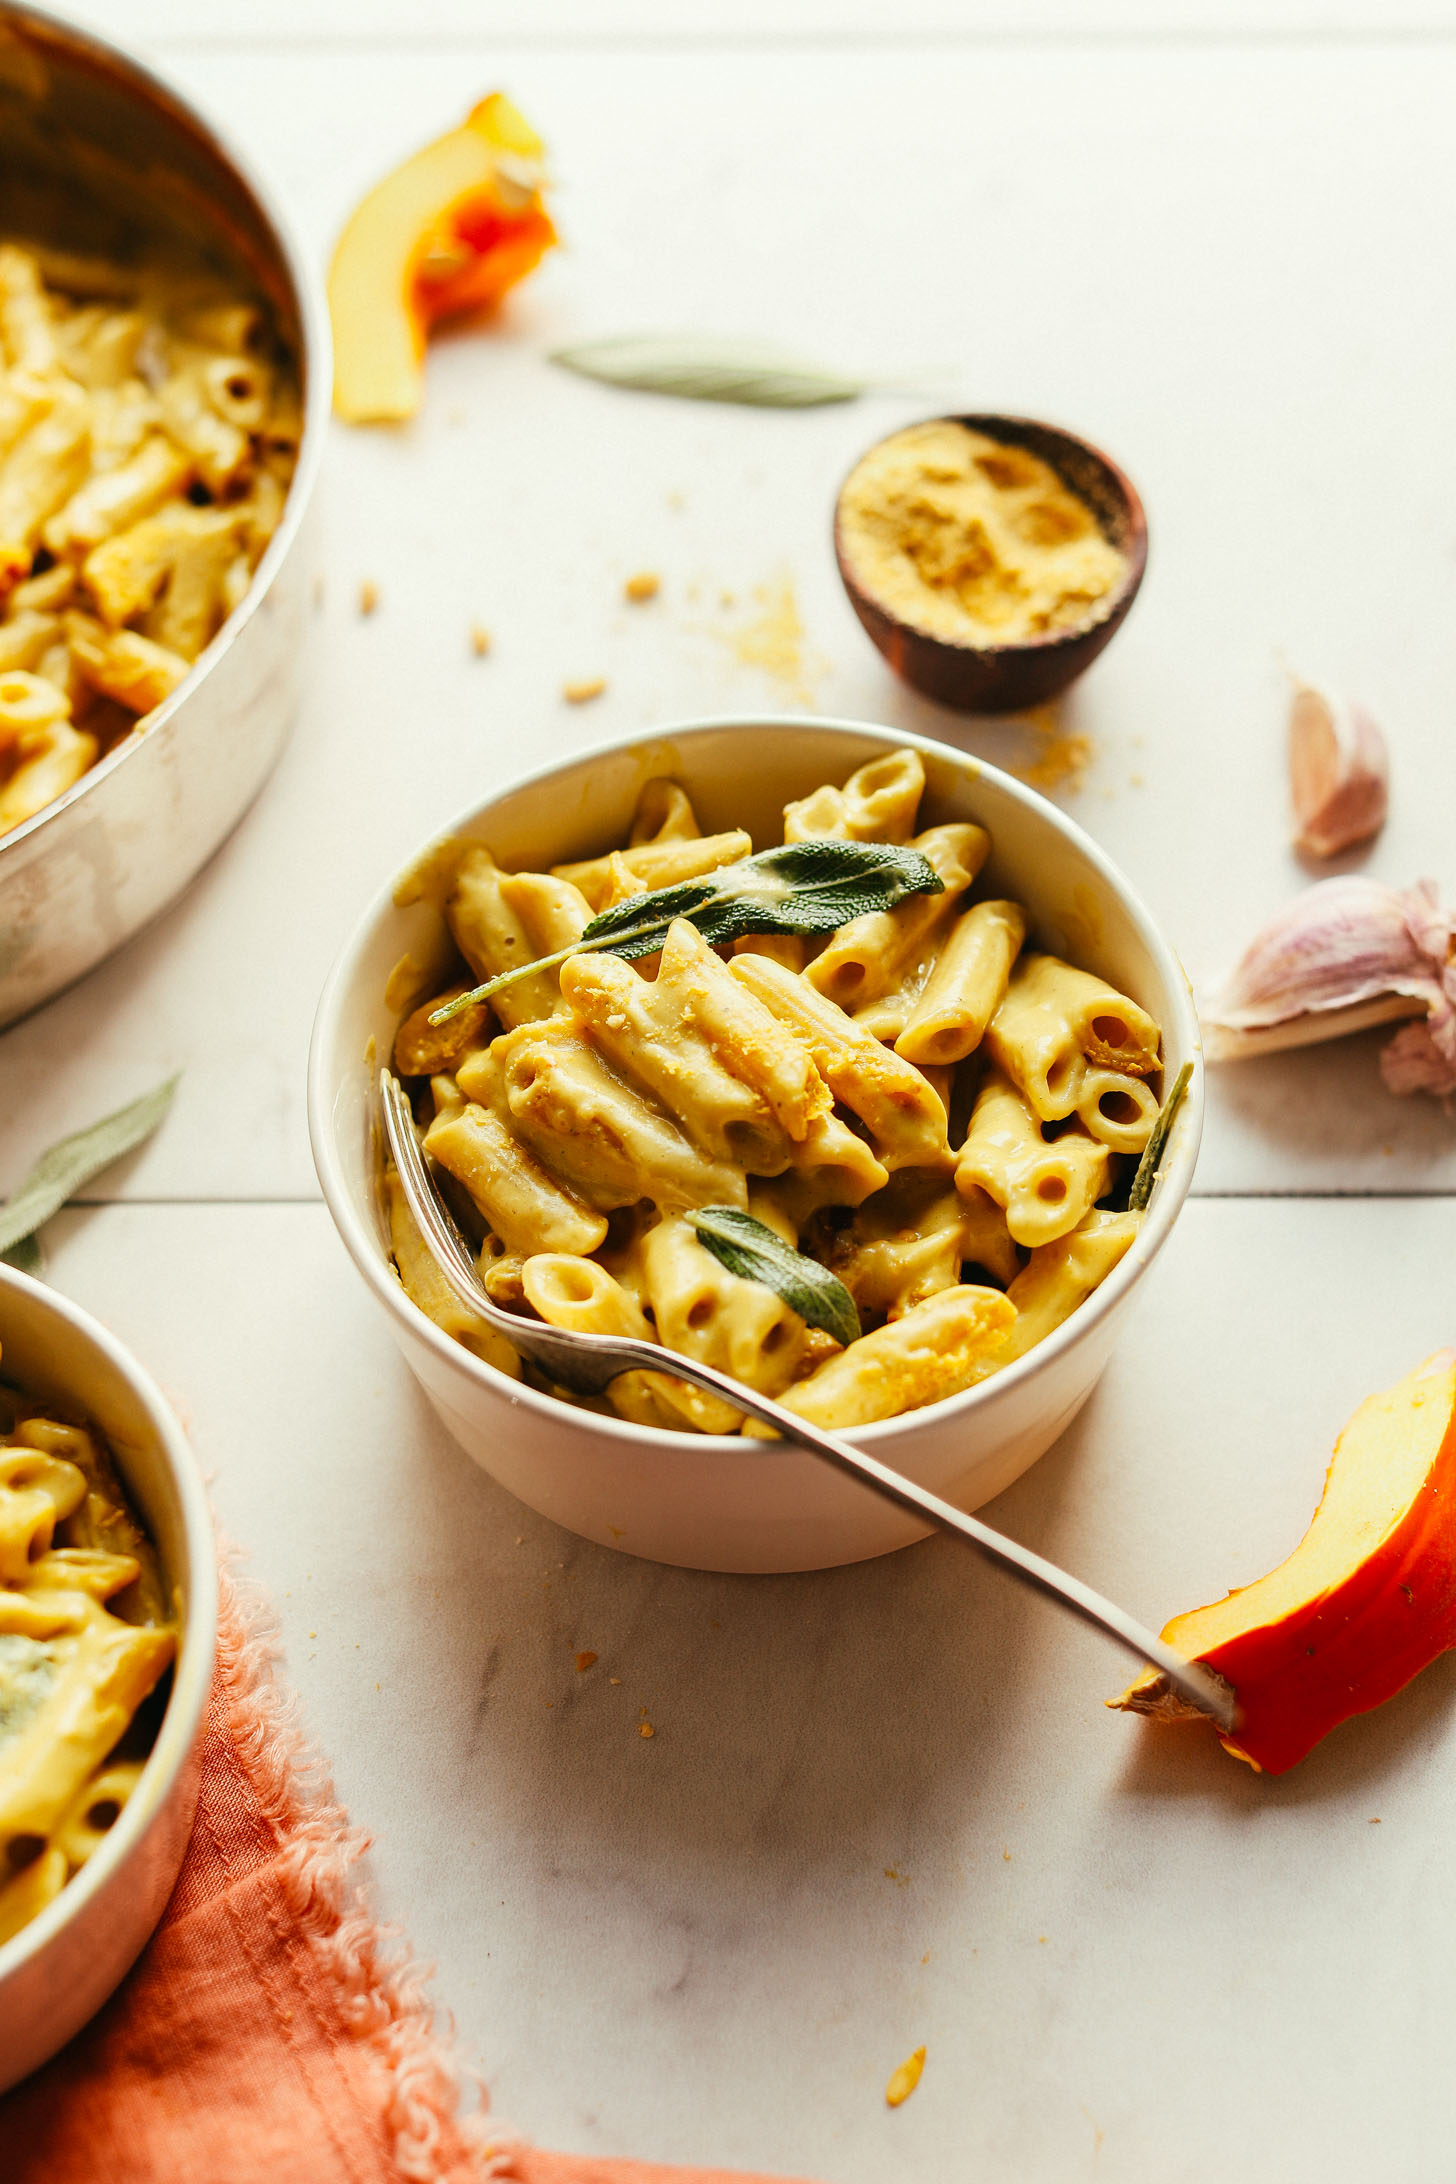 AMAZING Pumpkin Mac 'n' Cheese! 10 ingredients, cheesy, hearty, SO delicious! #vegan #plantbased #pumpkin #pasta #recipe #glutenfree #minimalistbaker